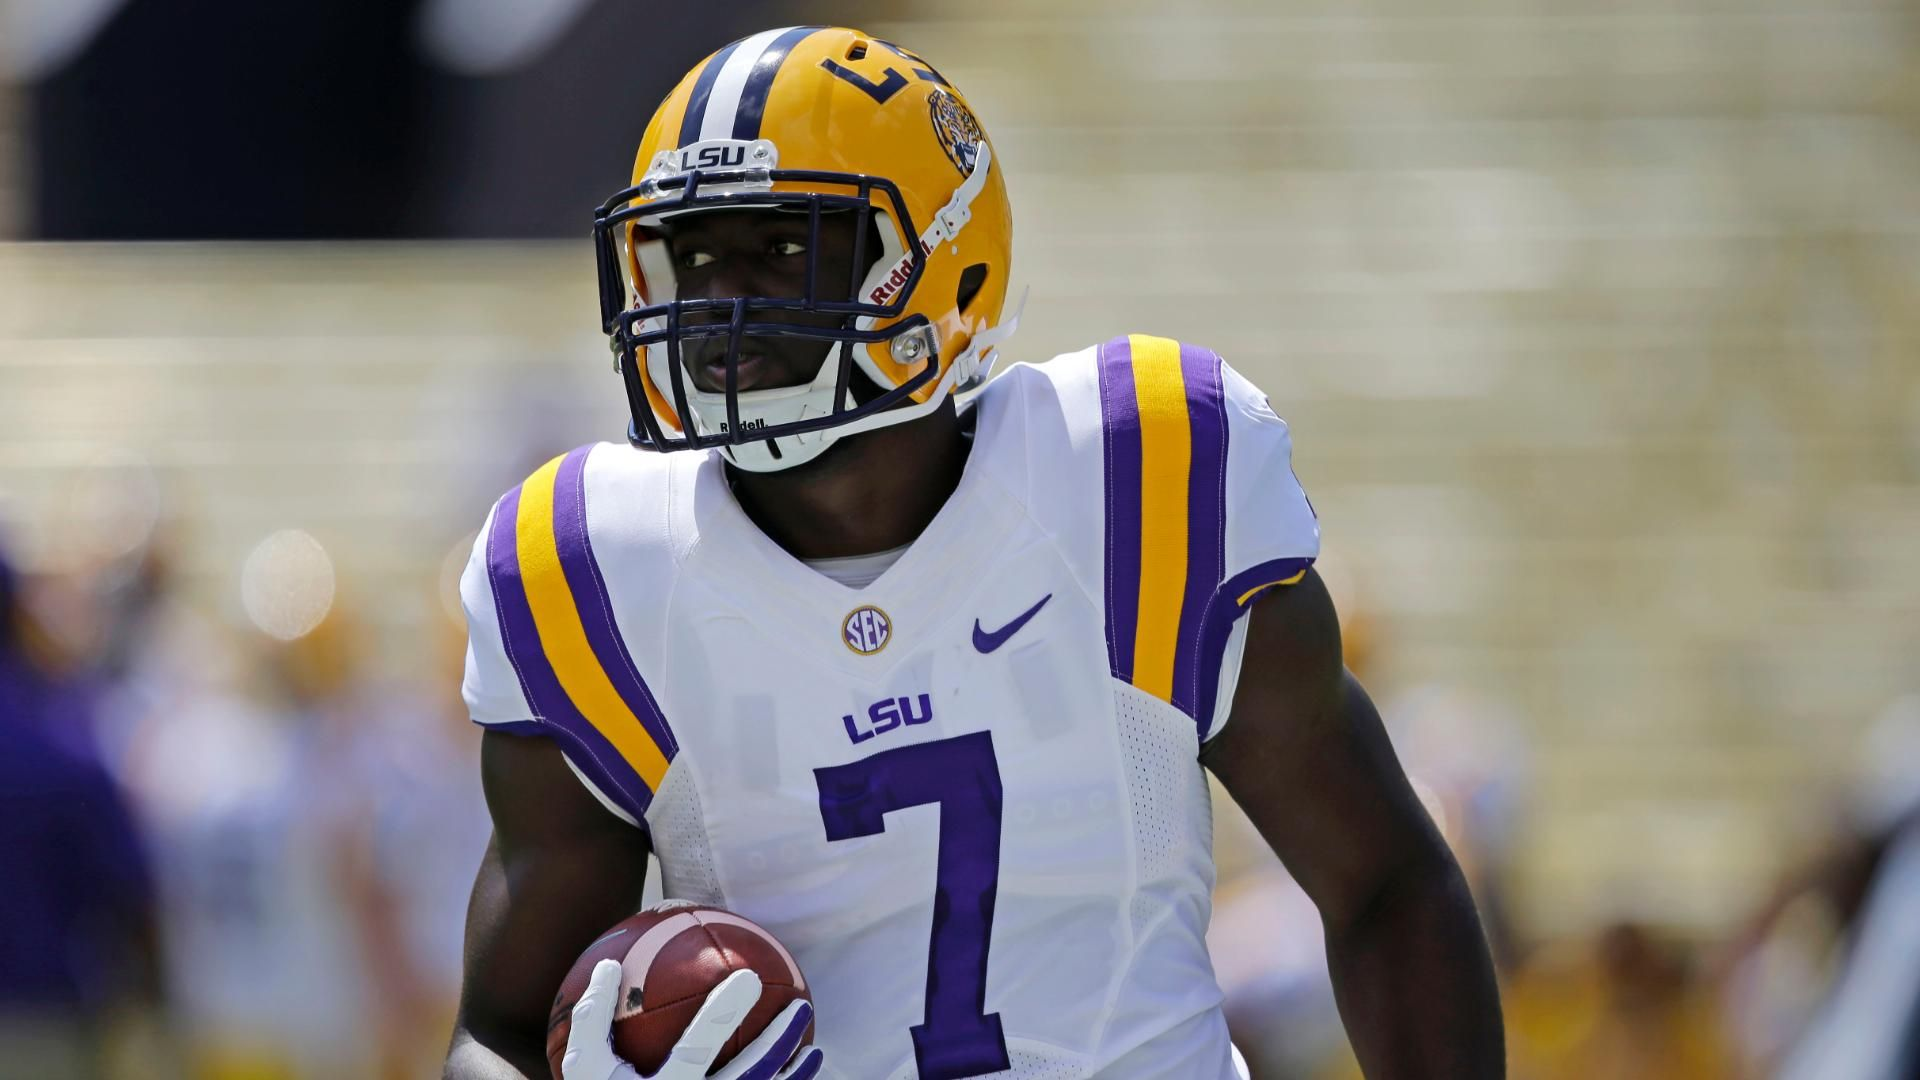 Herbstreit: NFL talk for Fournette needs to stop